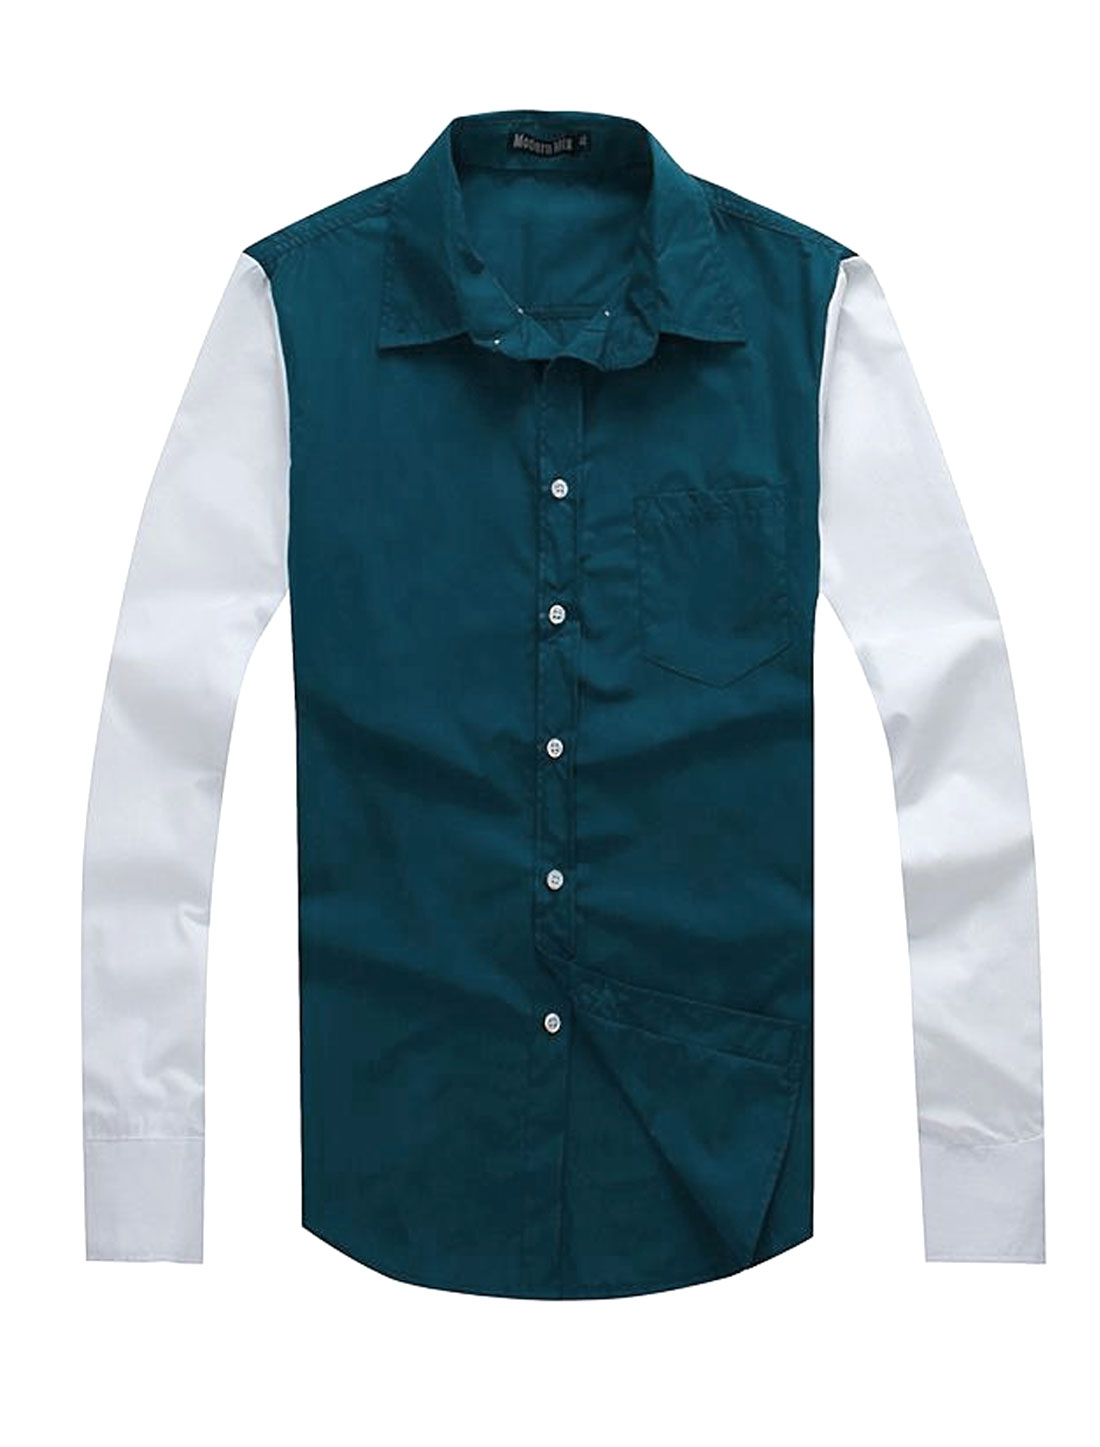 Men Casual Point Collar Two Tone Panel Button Down Shirt Peacock Blue M